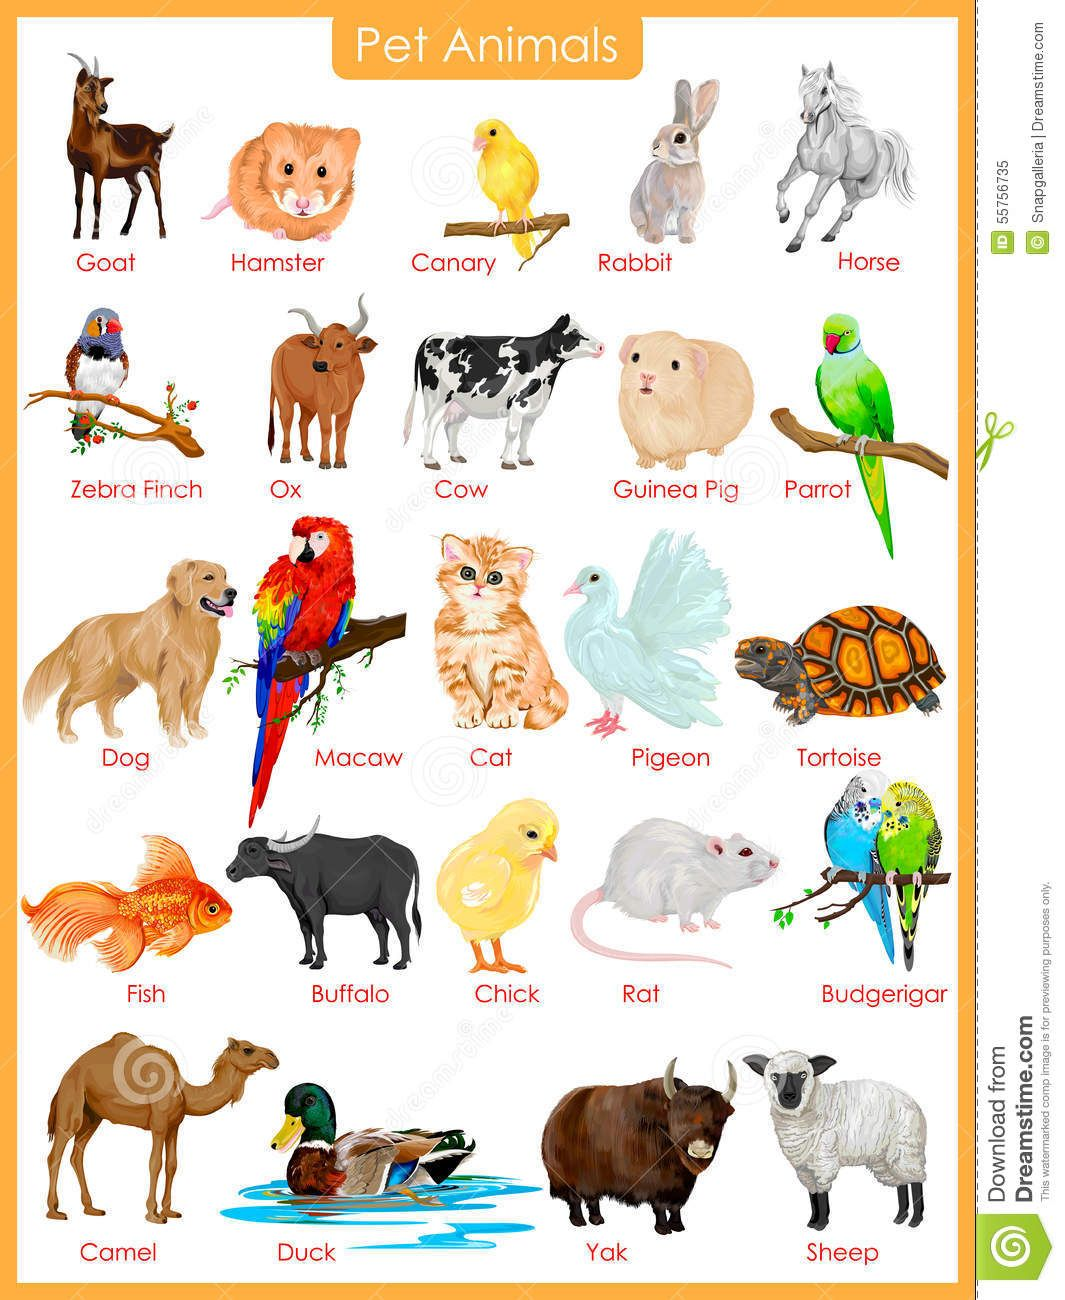 Image result for pet animals pictures Animals for kids